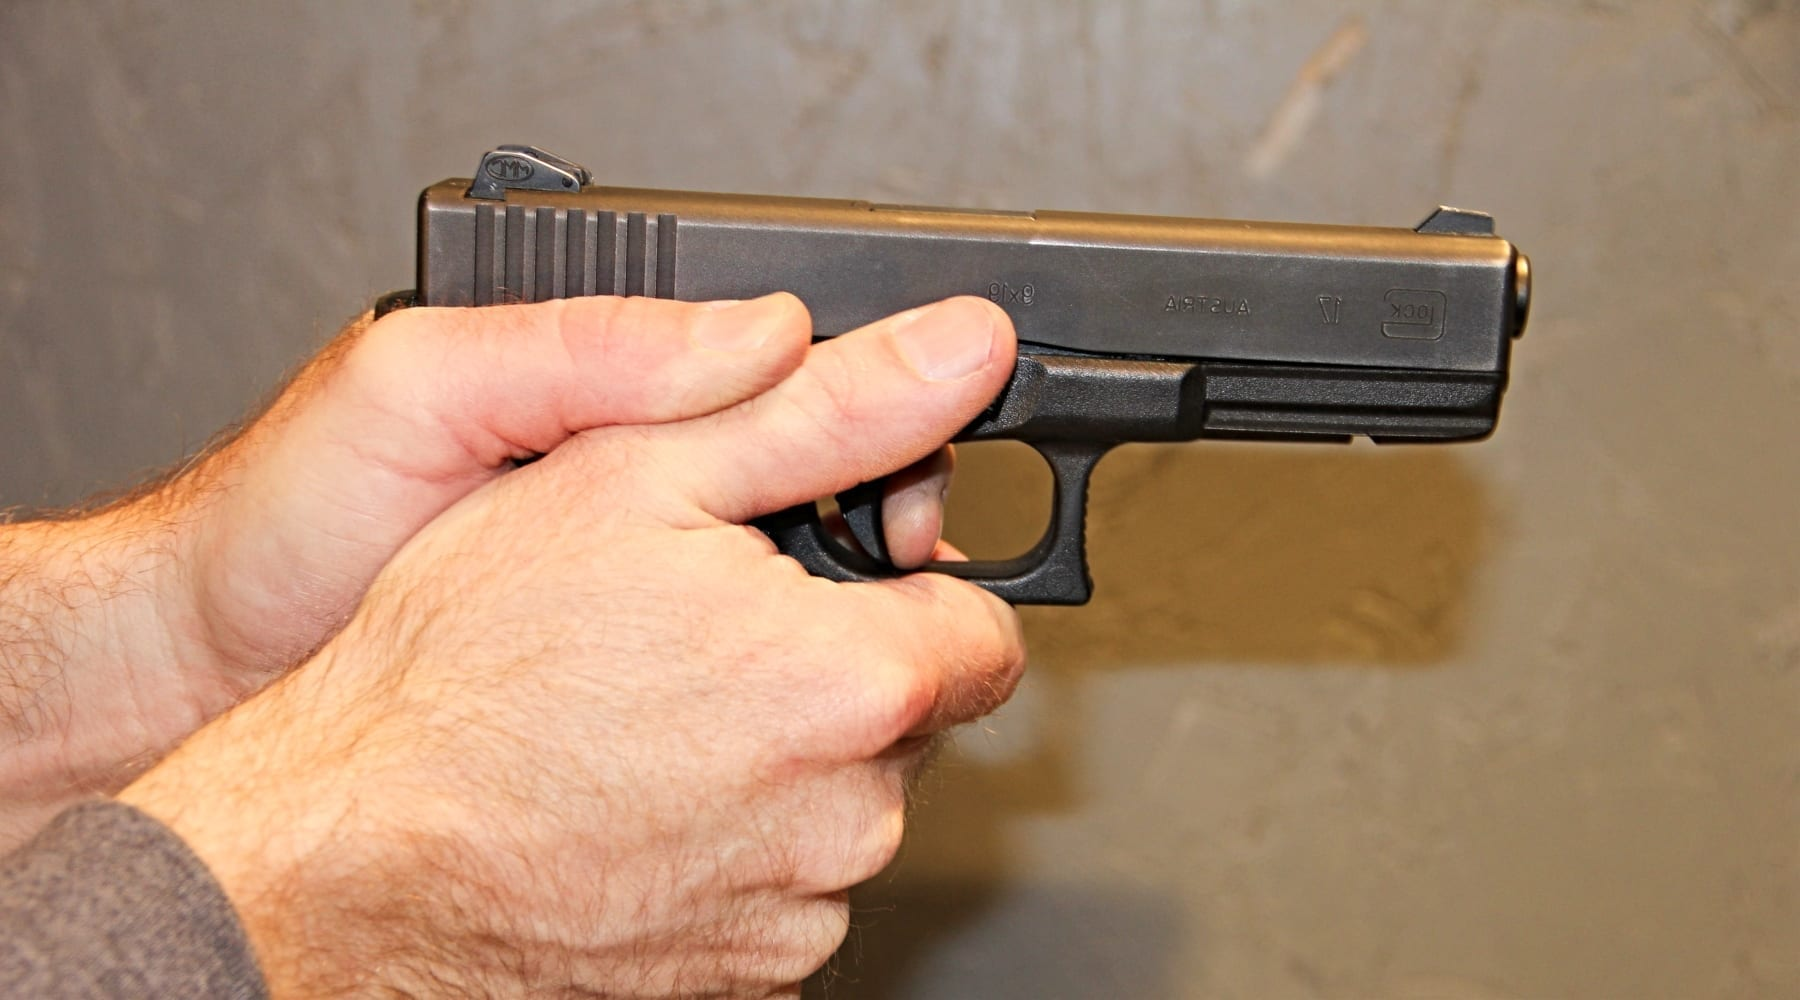 U.S. Majority Continues to Support Stricter Gun Laws